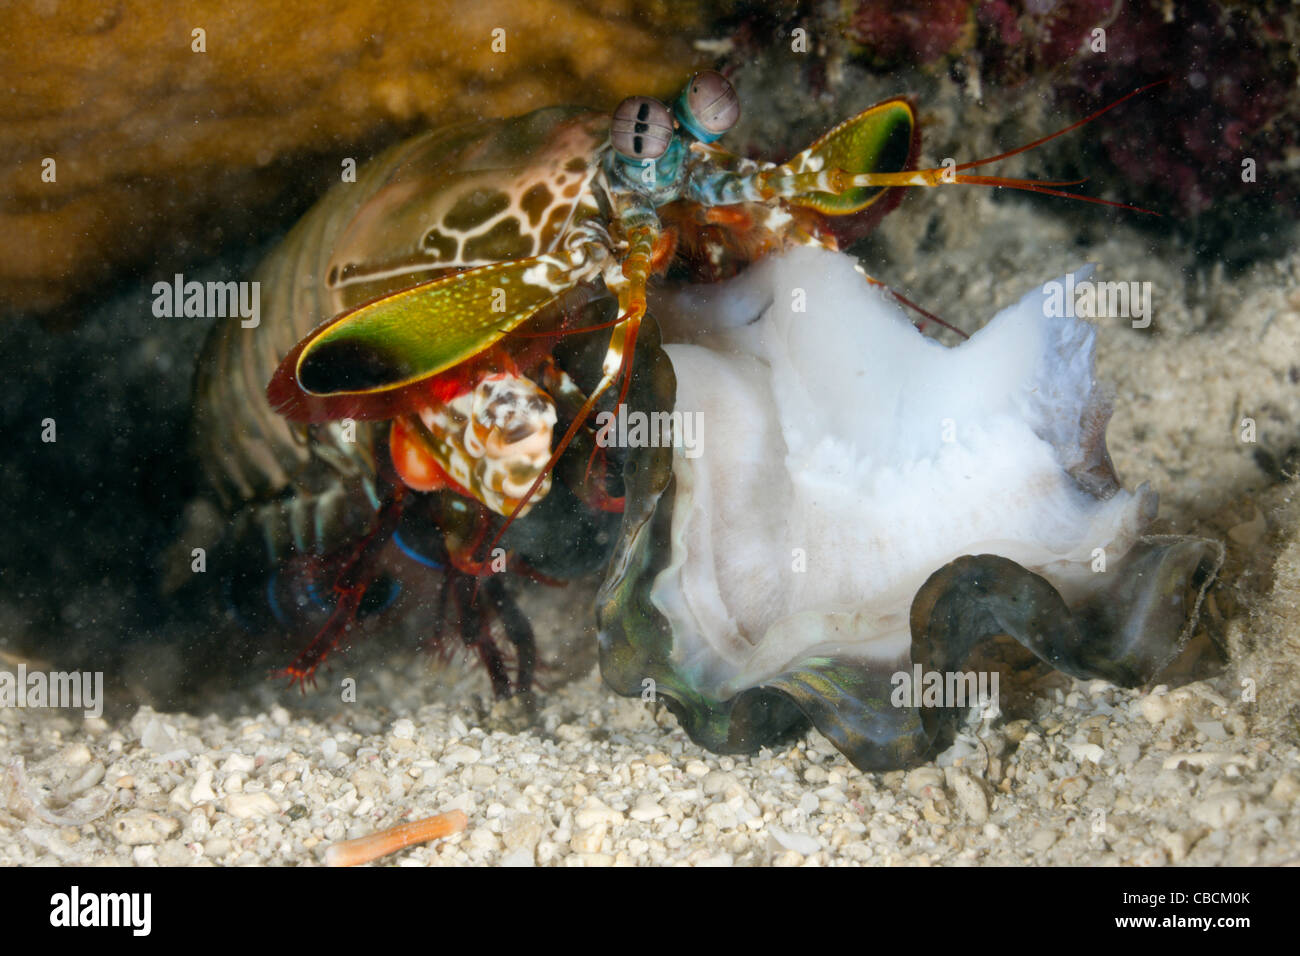 Mantis Smasher Shrimp with his Prey, Cenderawasih Bay, West Papua, Indonesia - Stock Image